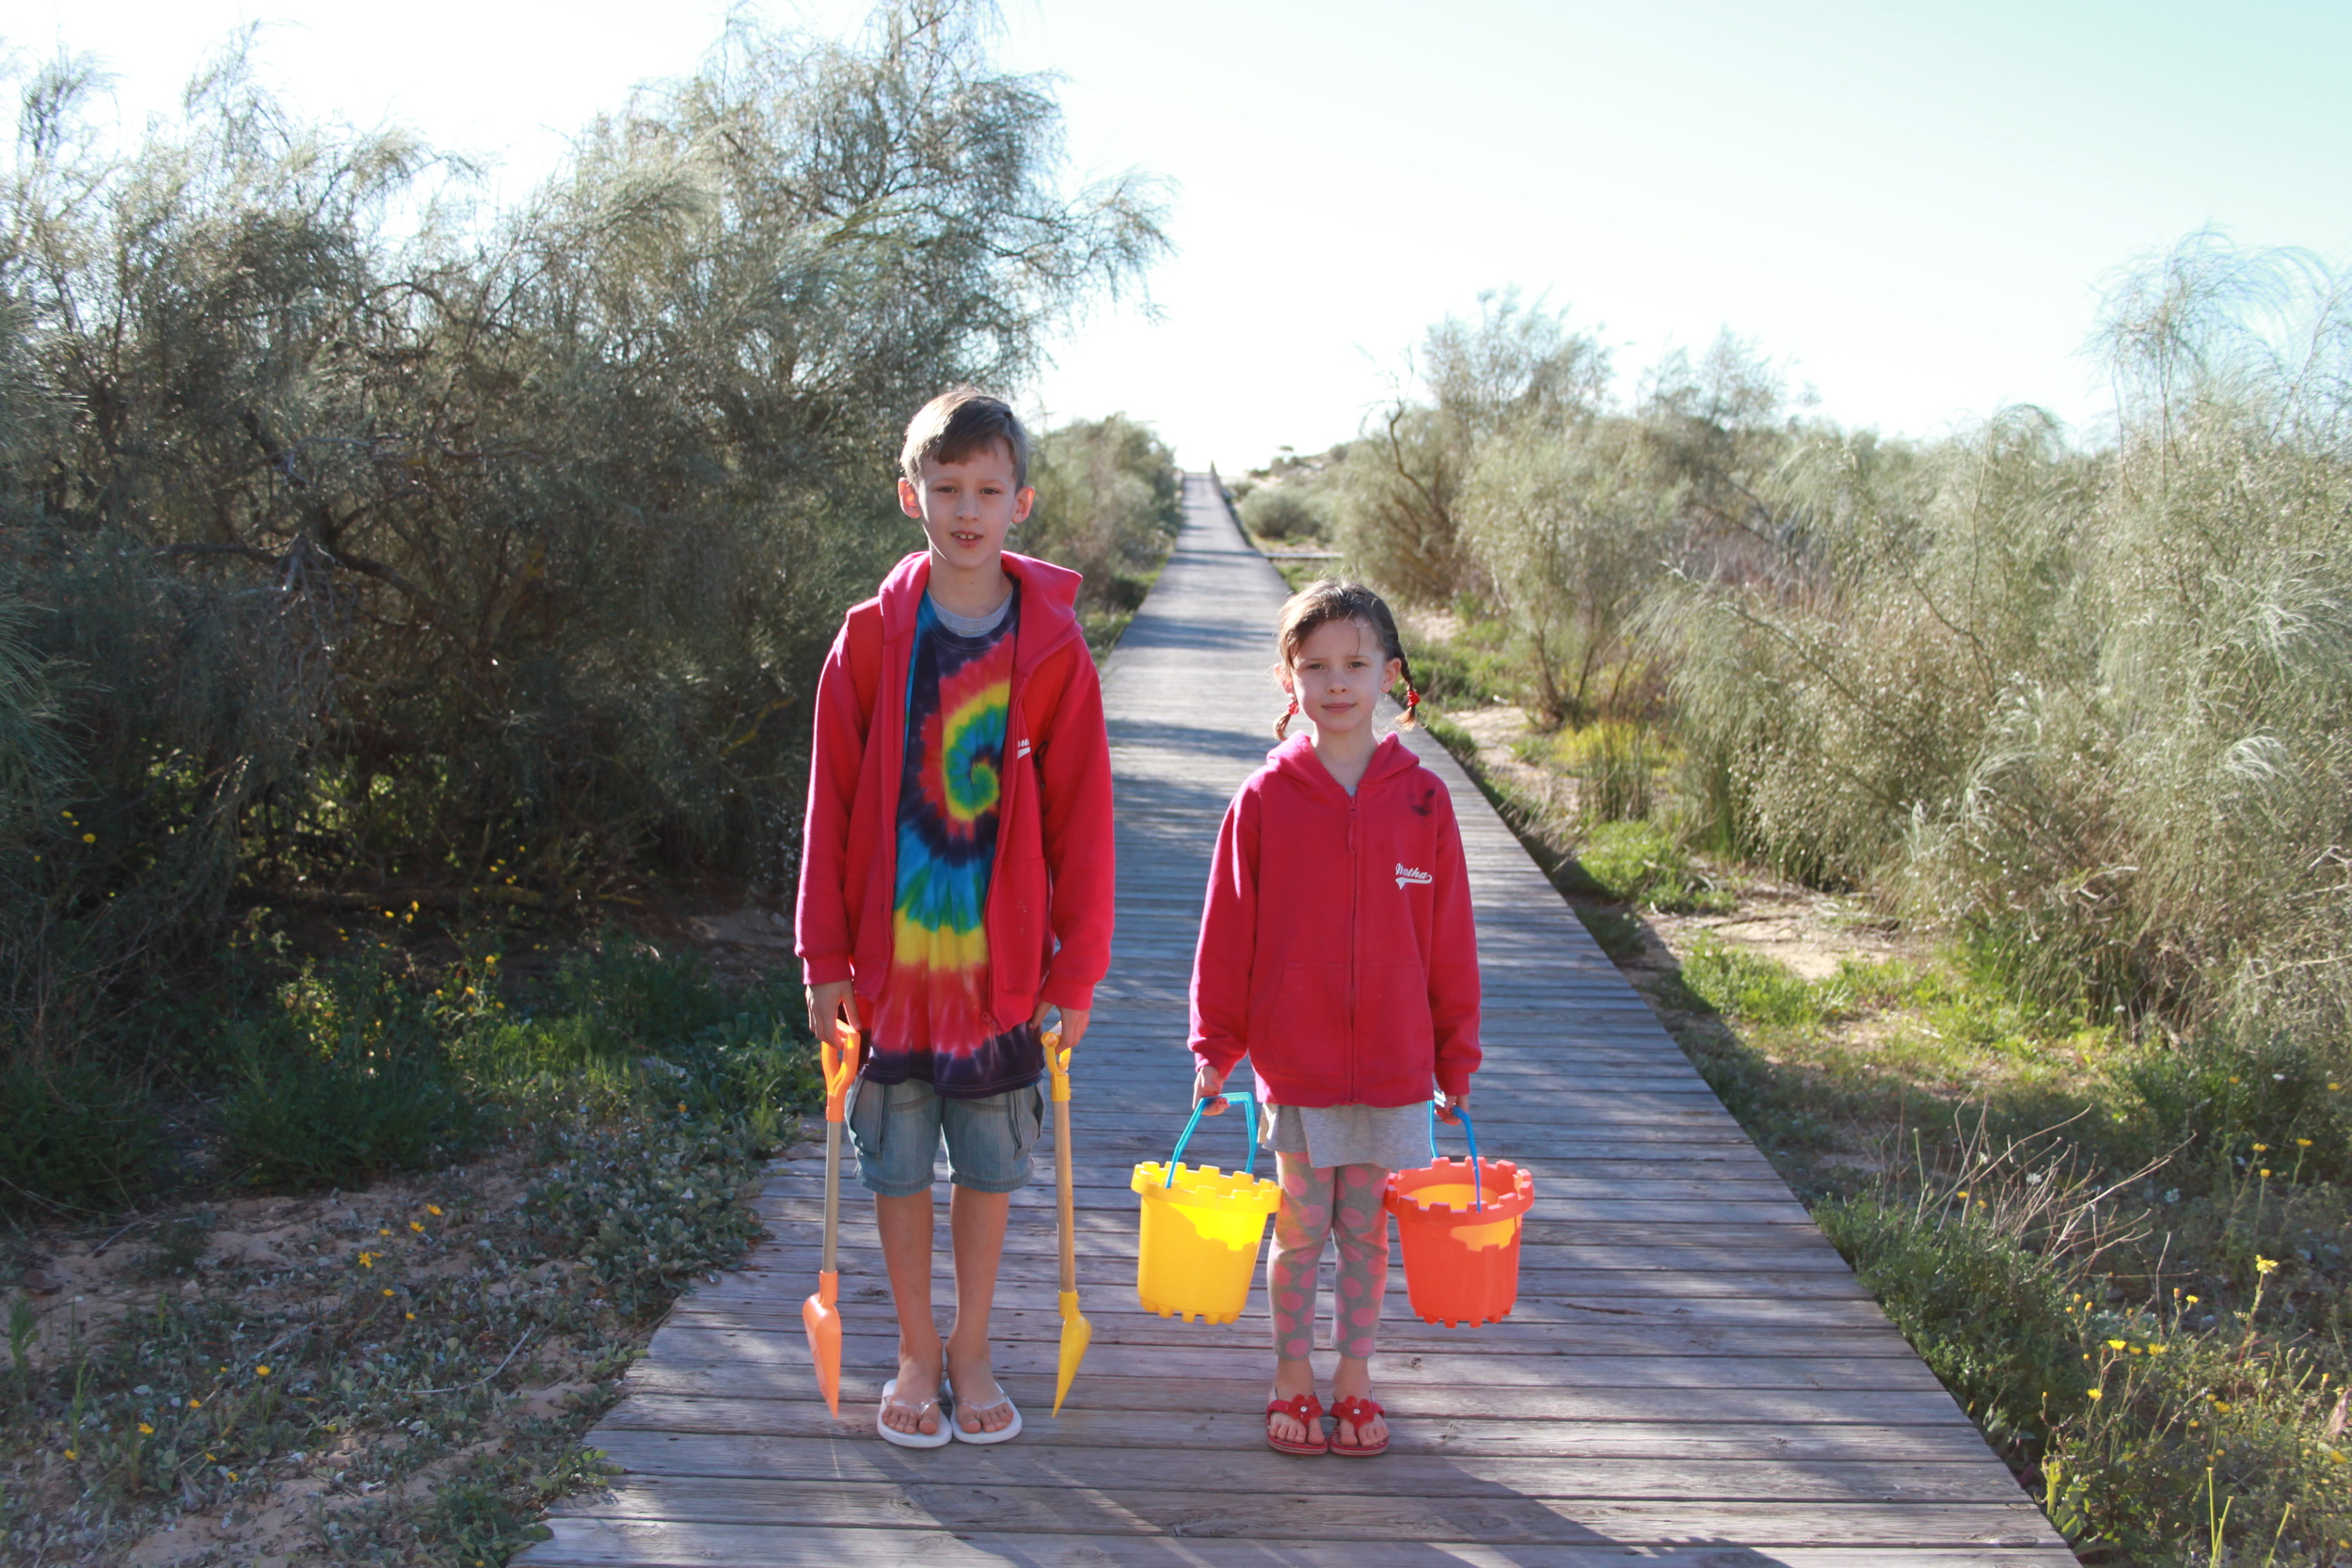 Truman (8) and Martha (6) off to dig holes on the beach in the early morning sunshine...